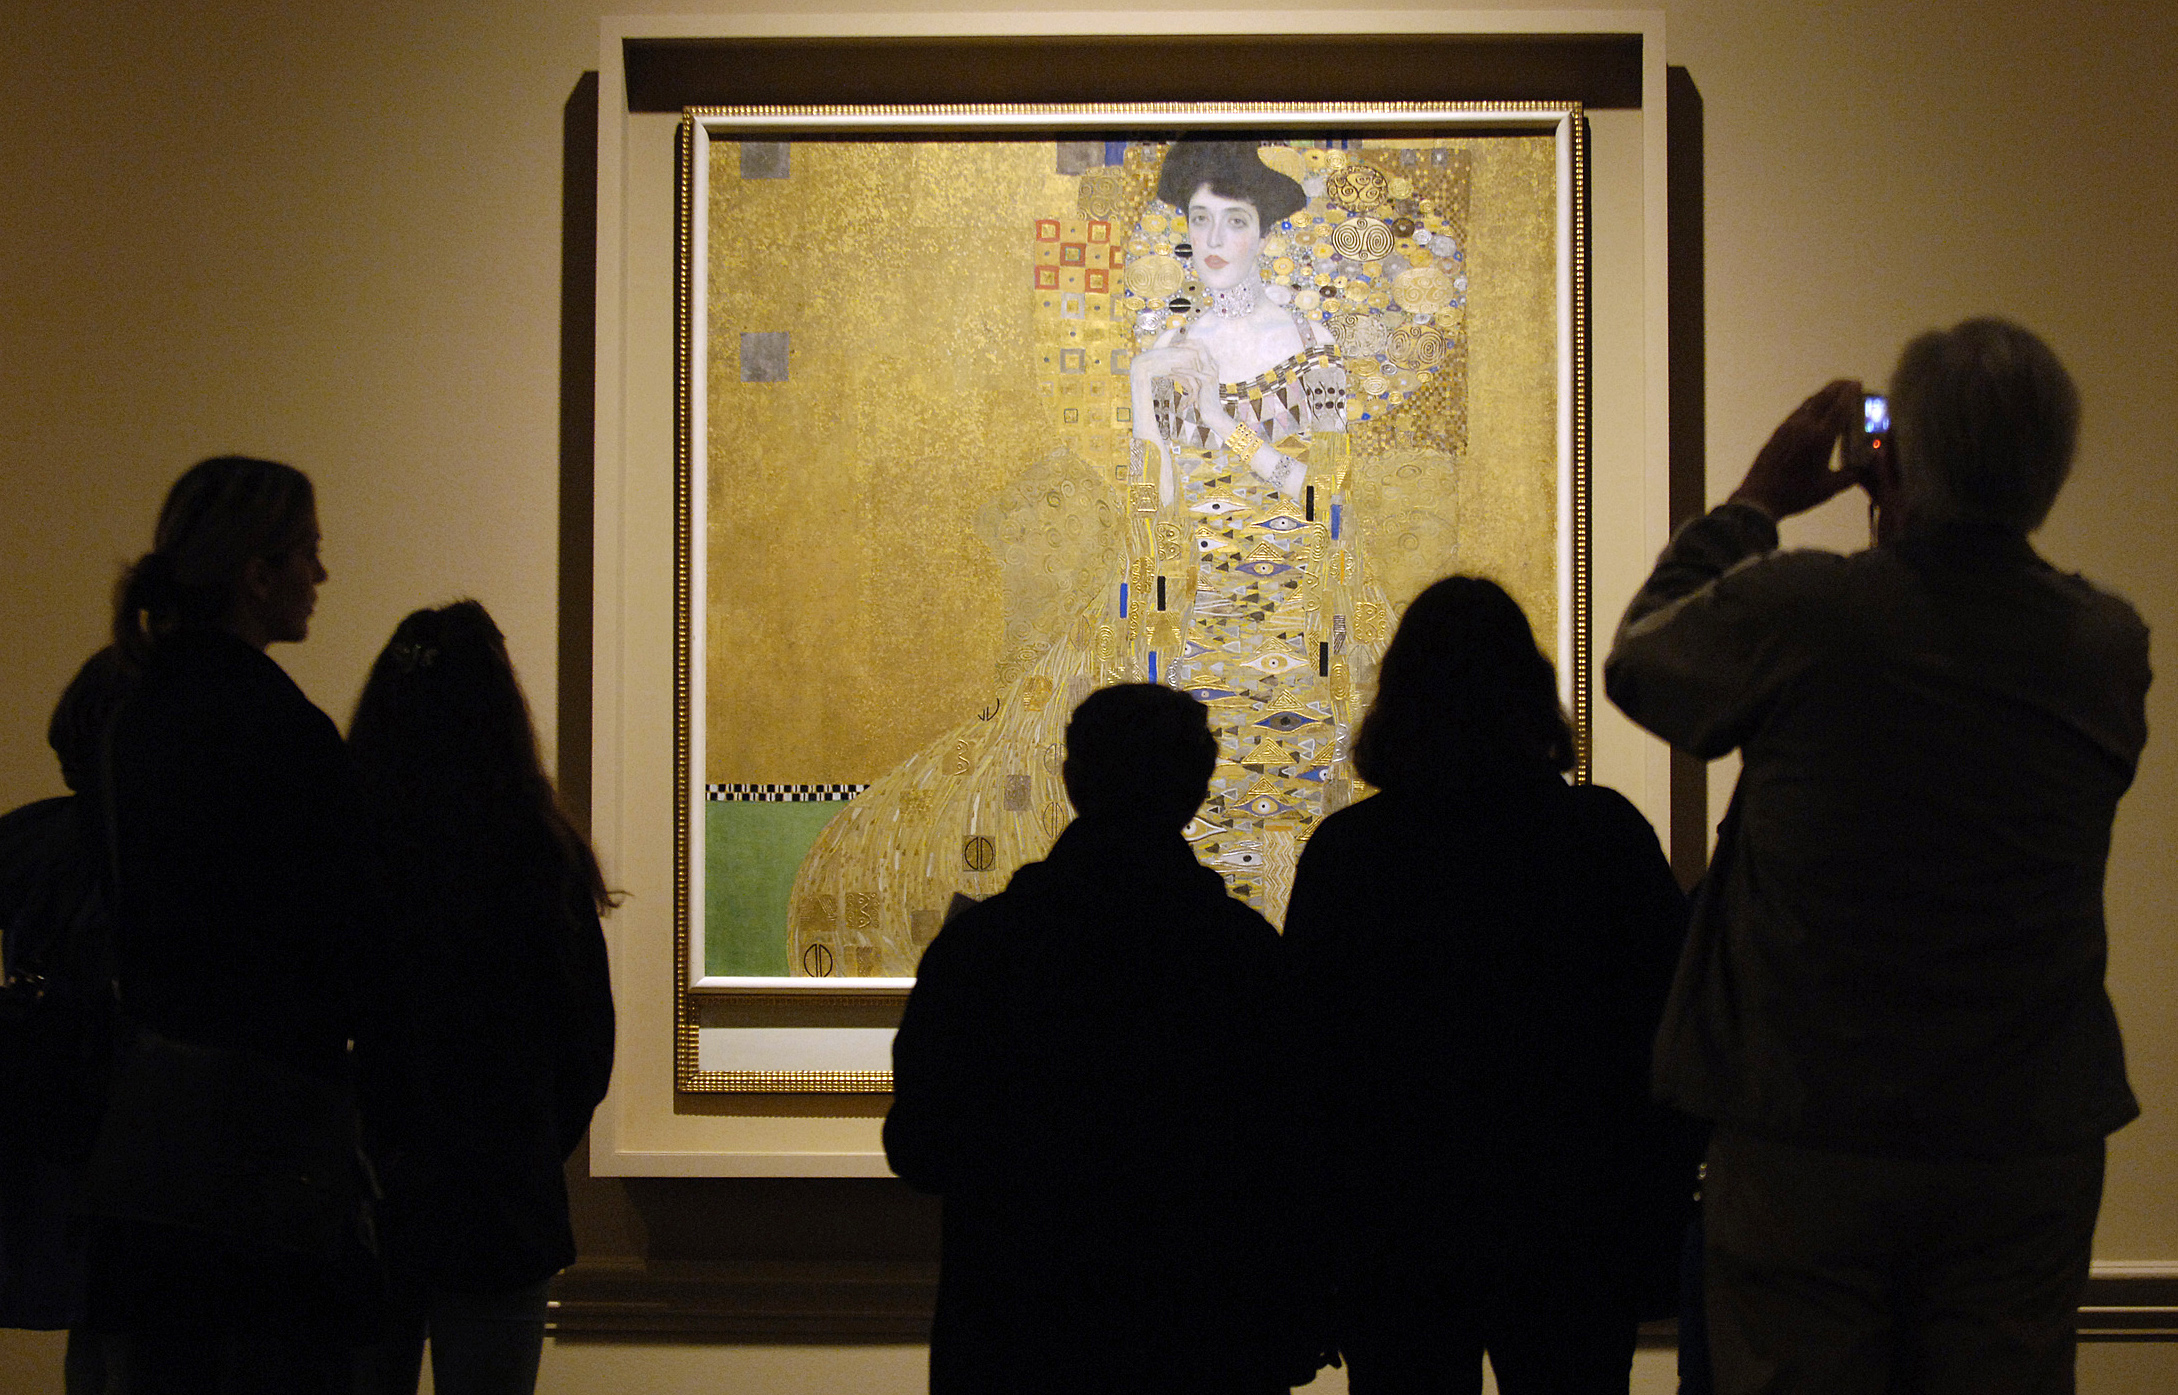 "Museum visitors study ""Adele Bloch-Bauer I,"" a 1907 painting by Austrian artist Gustav Klimt at a special exhibition of Klimt paintings looted by the Nazis during World War II, at the Los Angeles County Museum of Art in Los Angeles, April 4, 2006. Los Angeles resident Maria Altmann won the return of the paintings from the Austrian government following a lengthy legal dispute over the rightful ownership of the paintings.  REUTERS/Chris Pizzello - RTR1C6Z2"